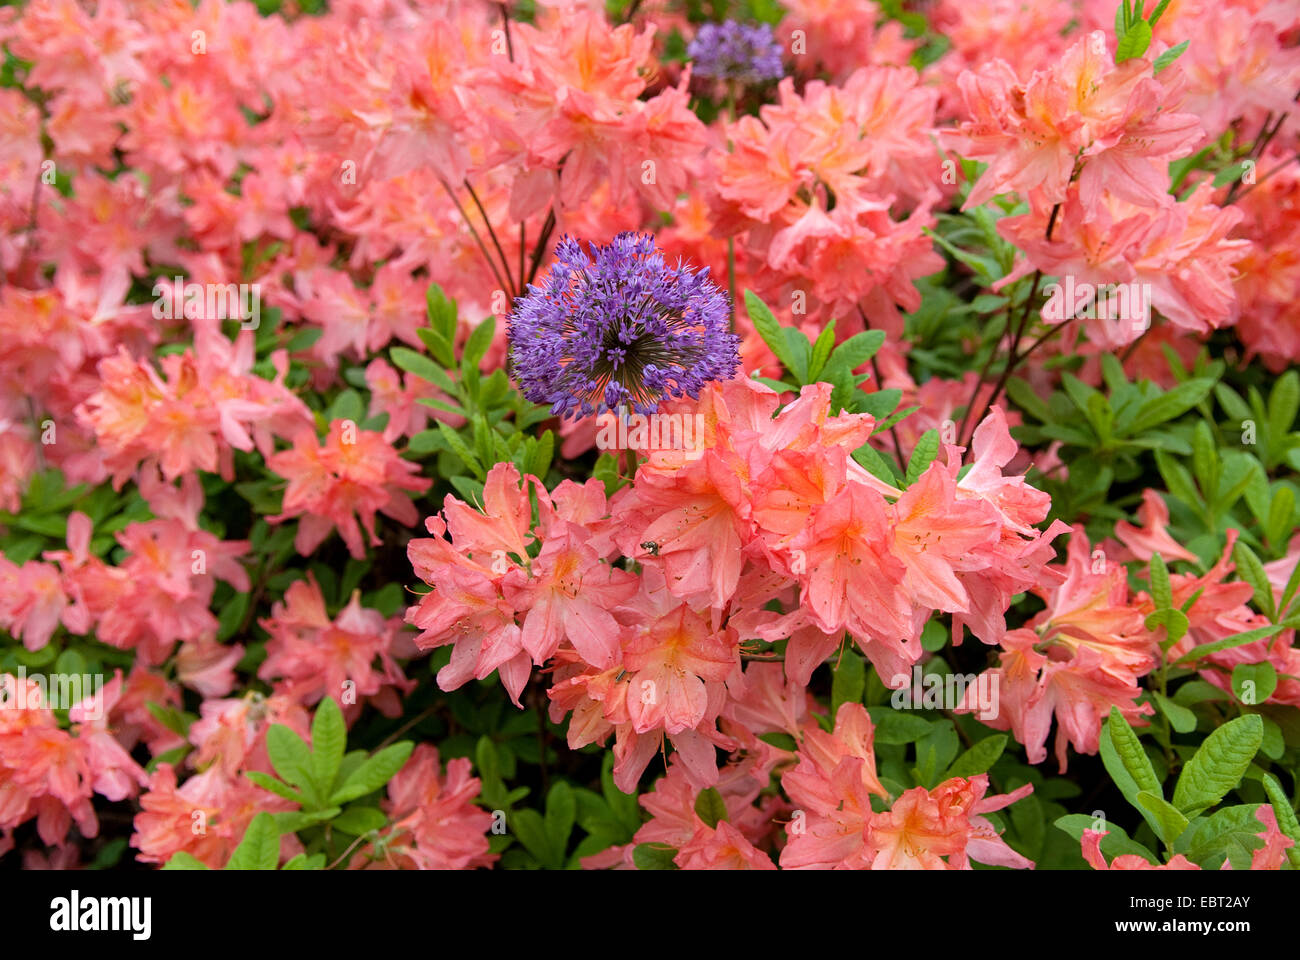 rhododendron (Rhododendron luteum 'Dante Gabriel Rosetti', Rhododendron luteum Dante Gabriel Rosetti), cultivar - Stock Image